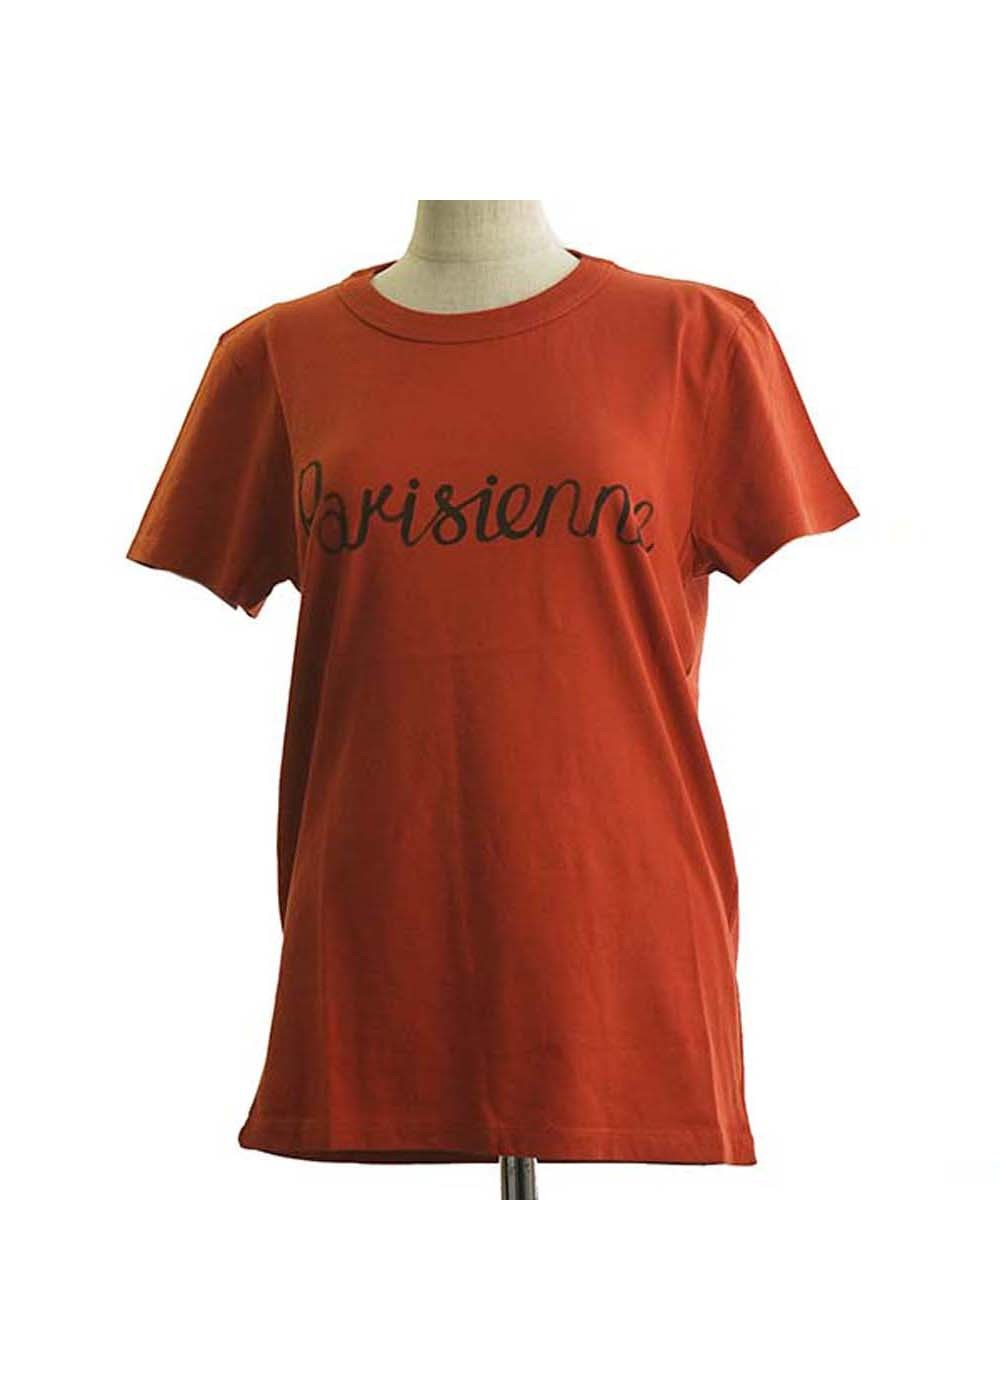 【最大35%OFF】TEE-SHIRT PARISIENNE|RUST|Tシャツ|MAISON KITSUNE(C)